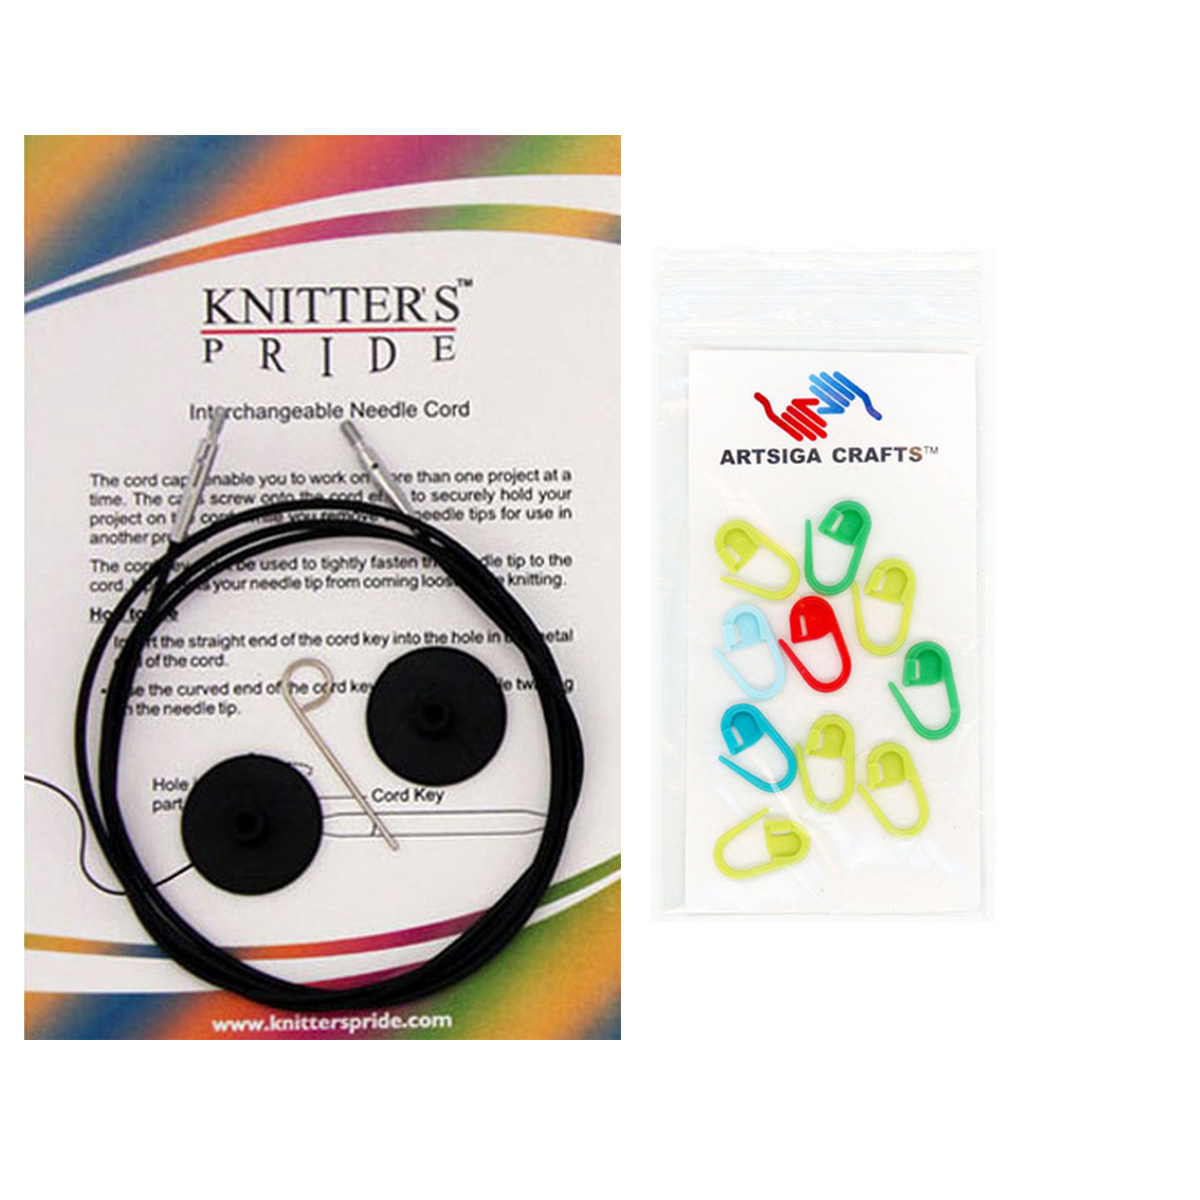 Knitter's Pride Interchangeable Connectors Bundle with 10 Artsiga Crafts Stitch Markers